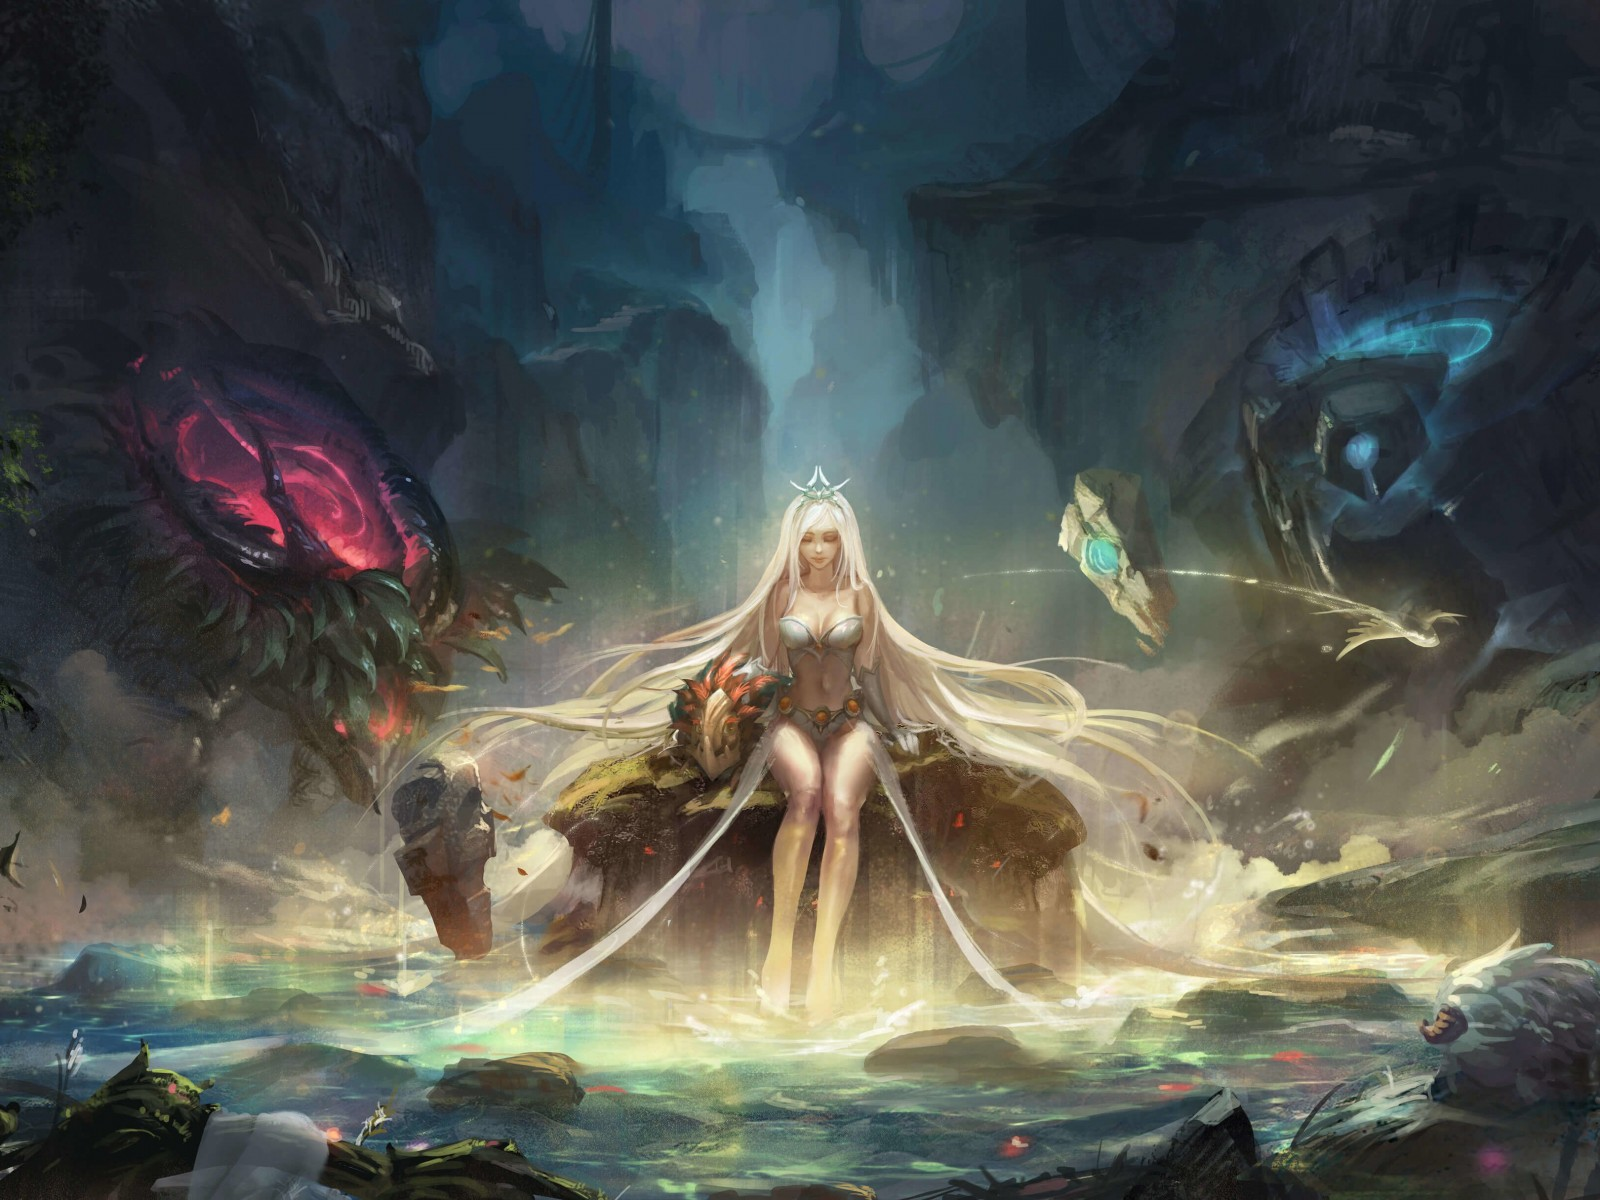 Janna - League of Legends Wallpaper for Desktop 1600x1200